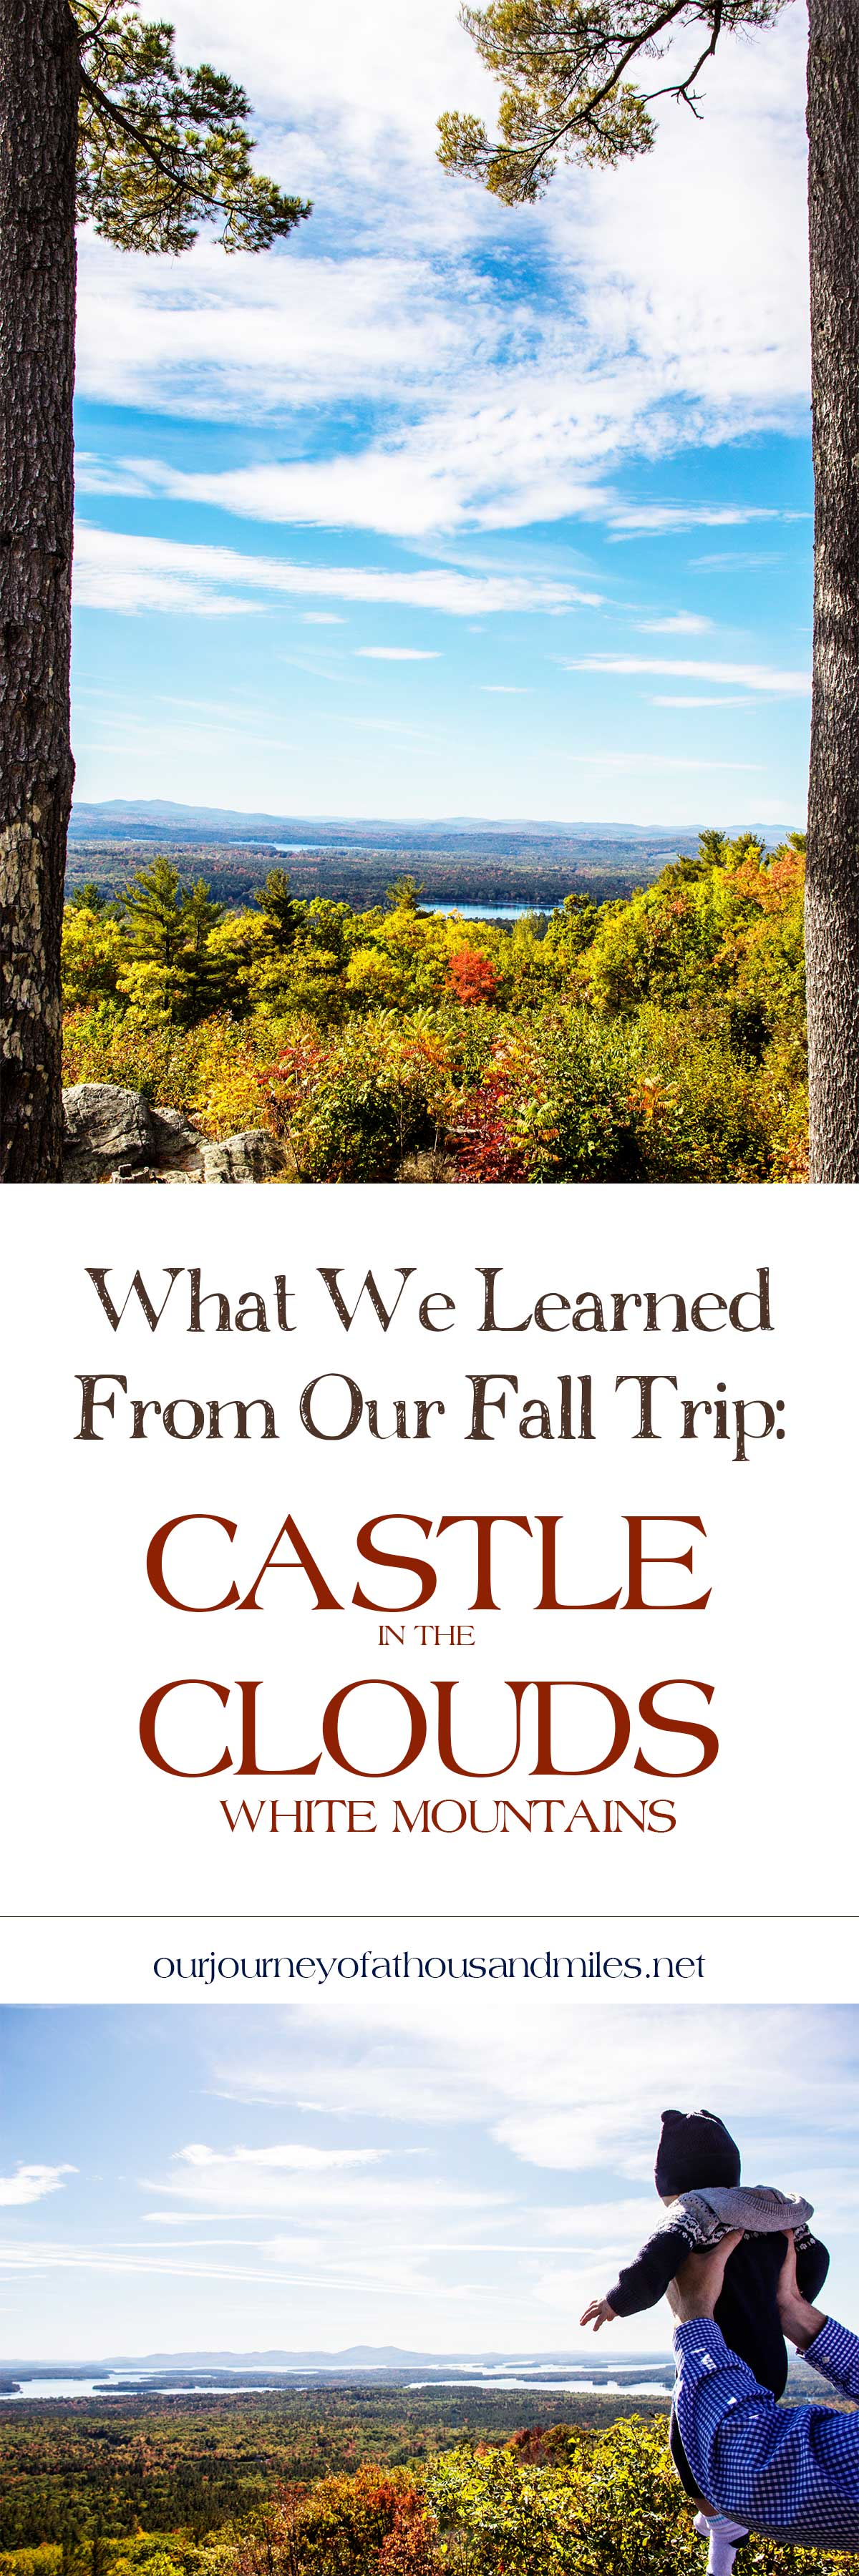 What-We-Learned-From-Our-Fall-Trip-Castle-in-the-Clouds-White-Mountains